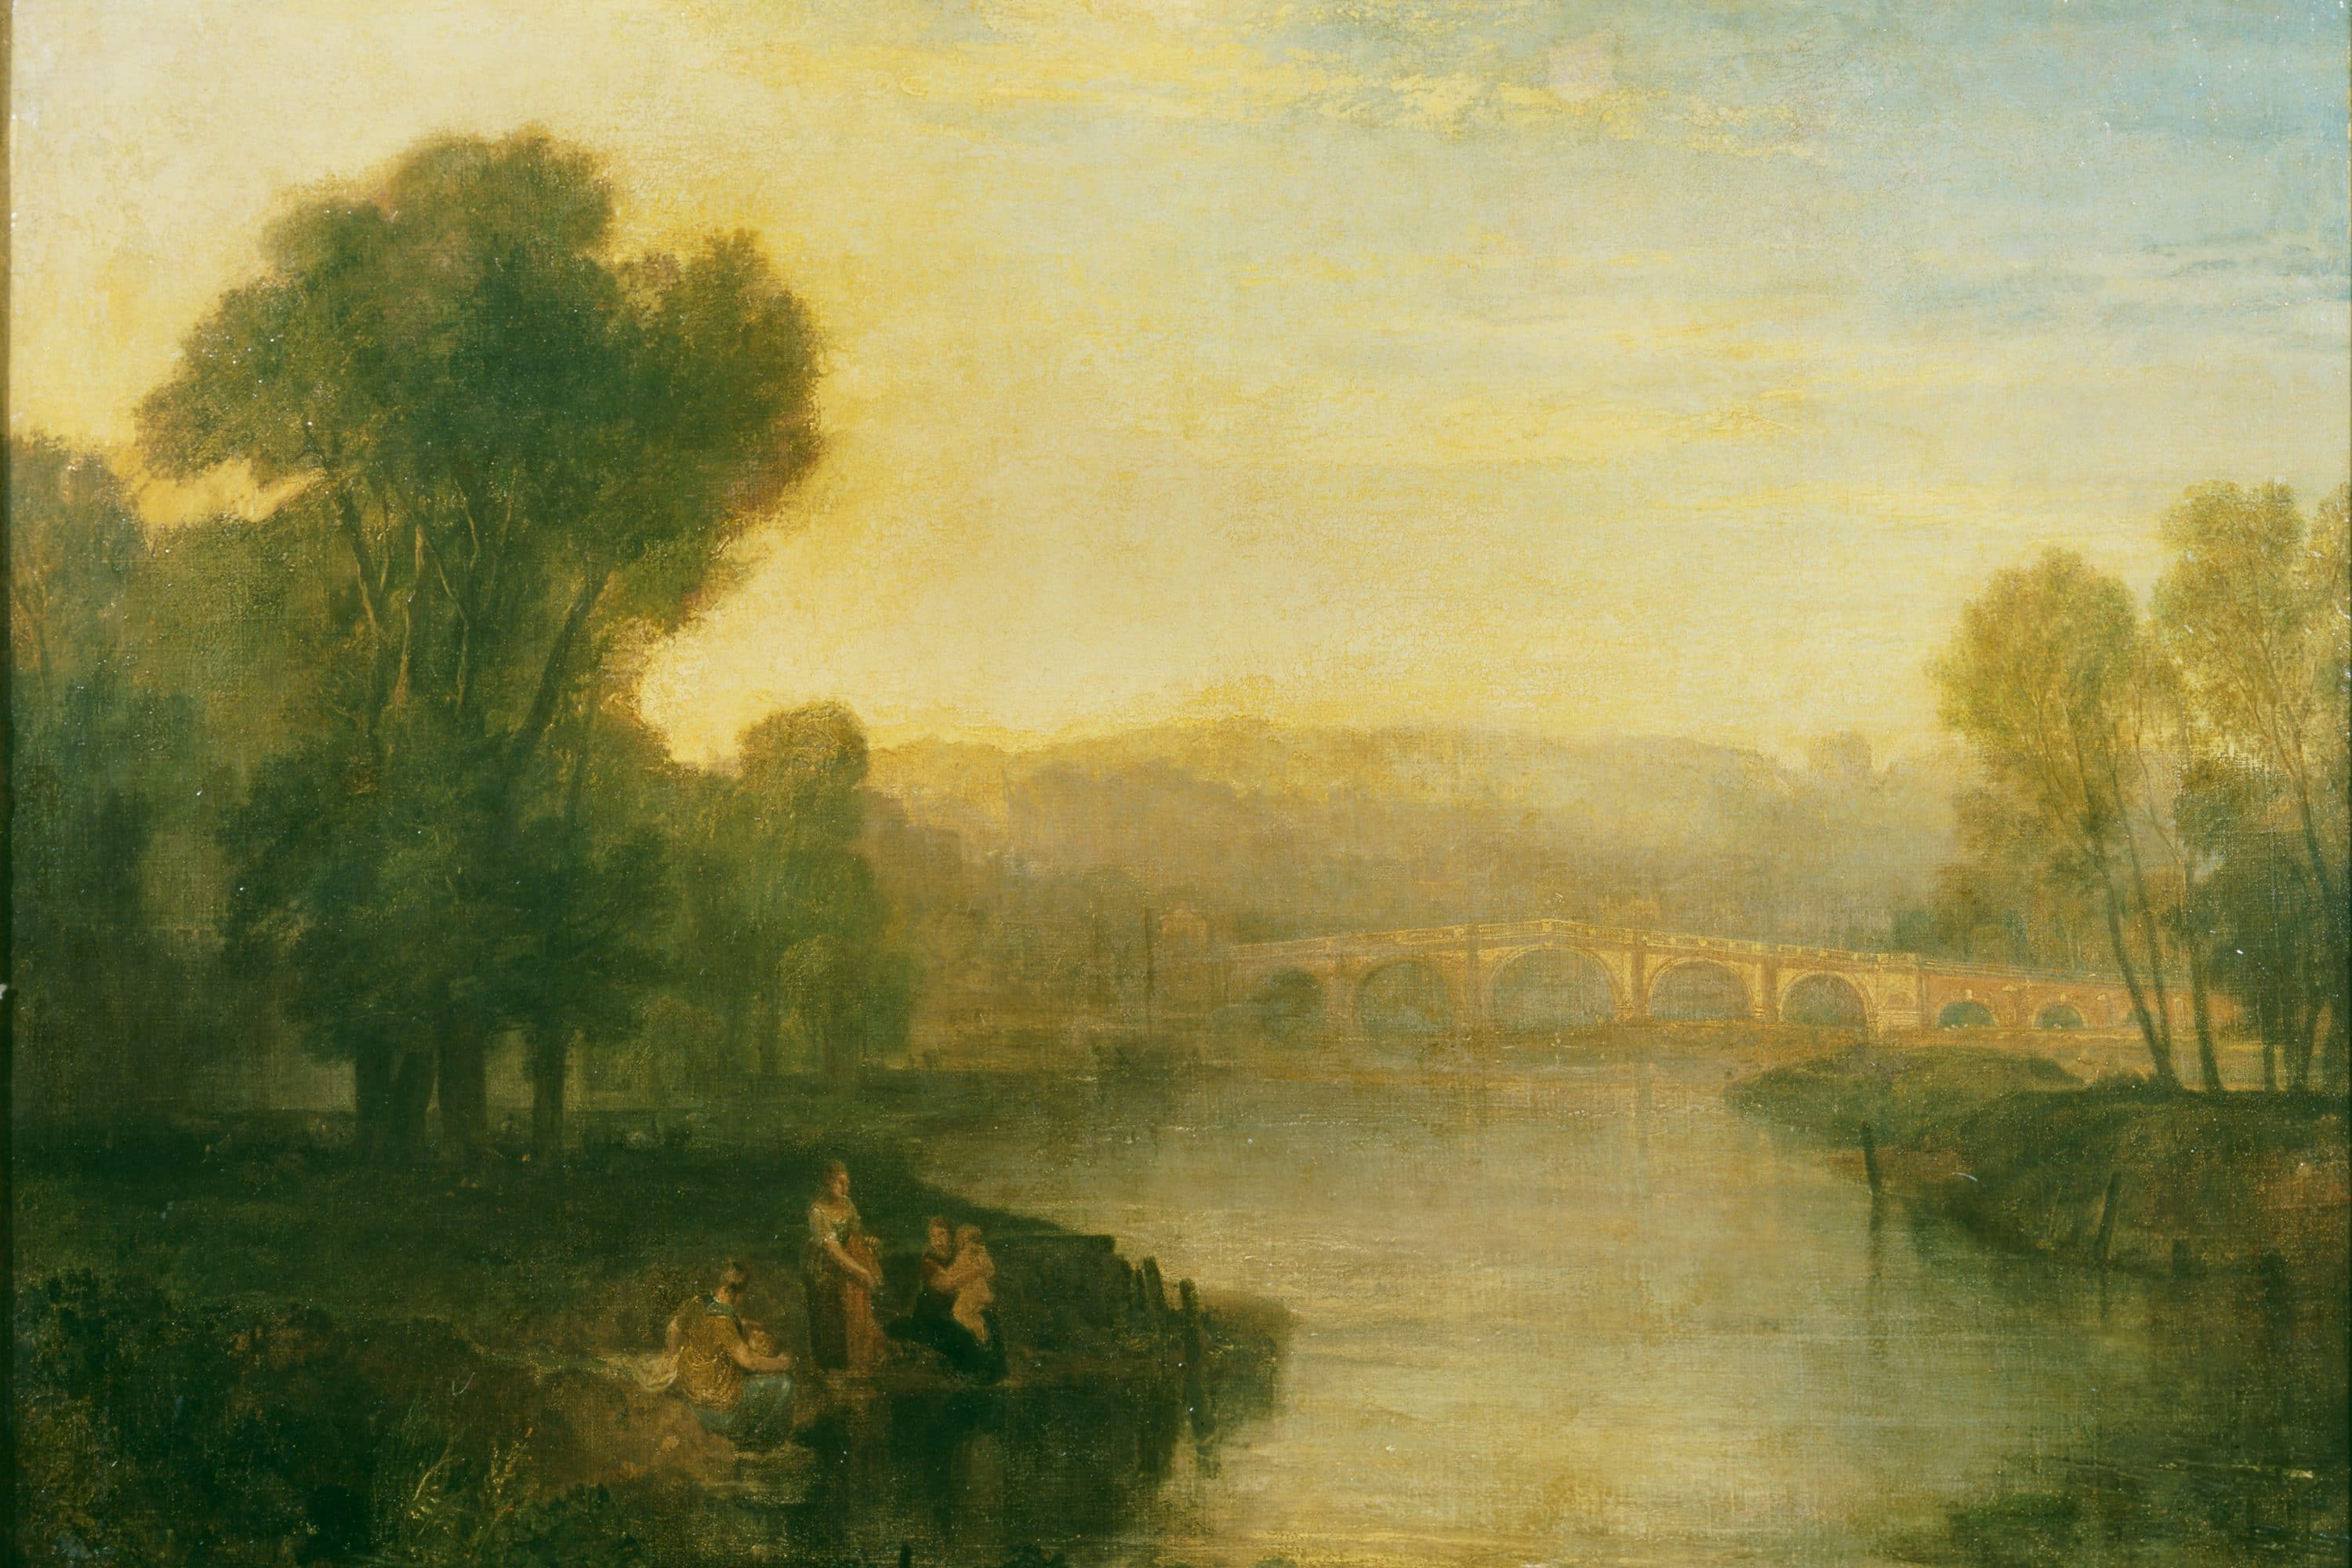 Bridge painting by Turner